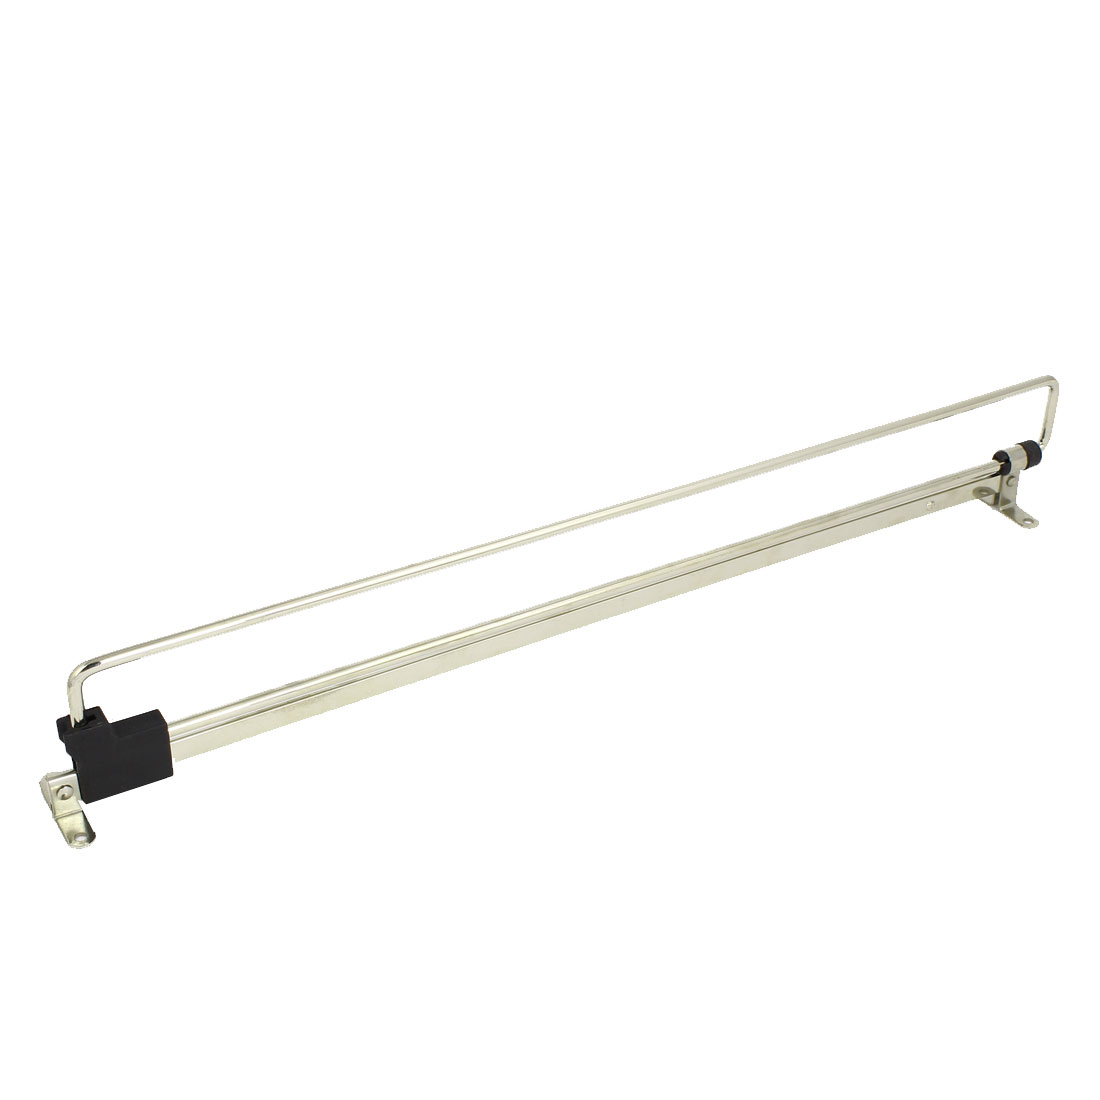 Wardrobe Cupboard Top Mount Pull out Retractable Rail Close Hanger 450mm Length